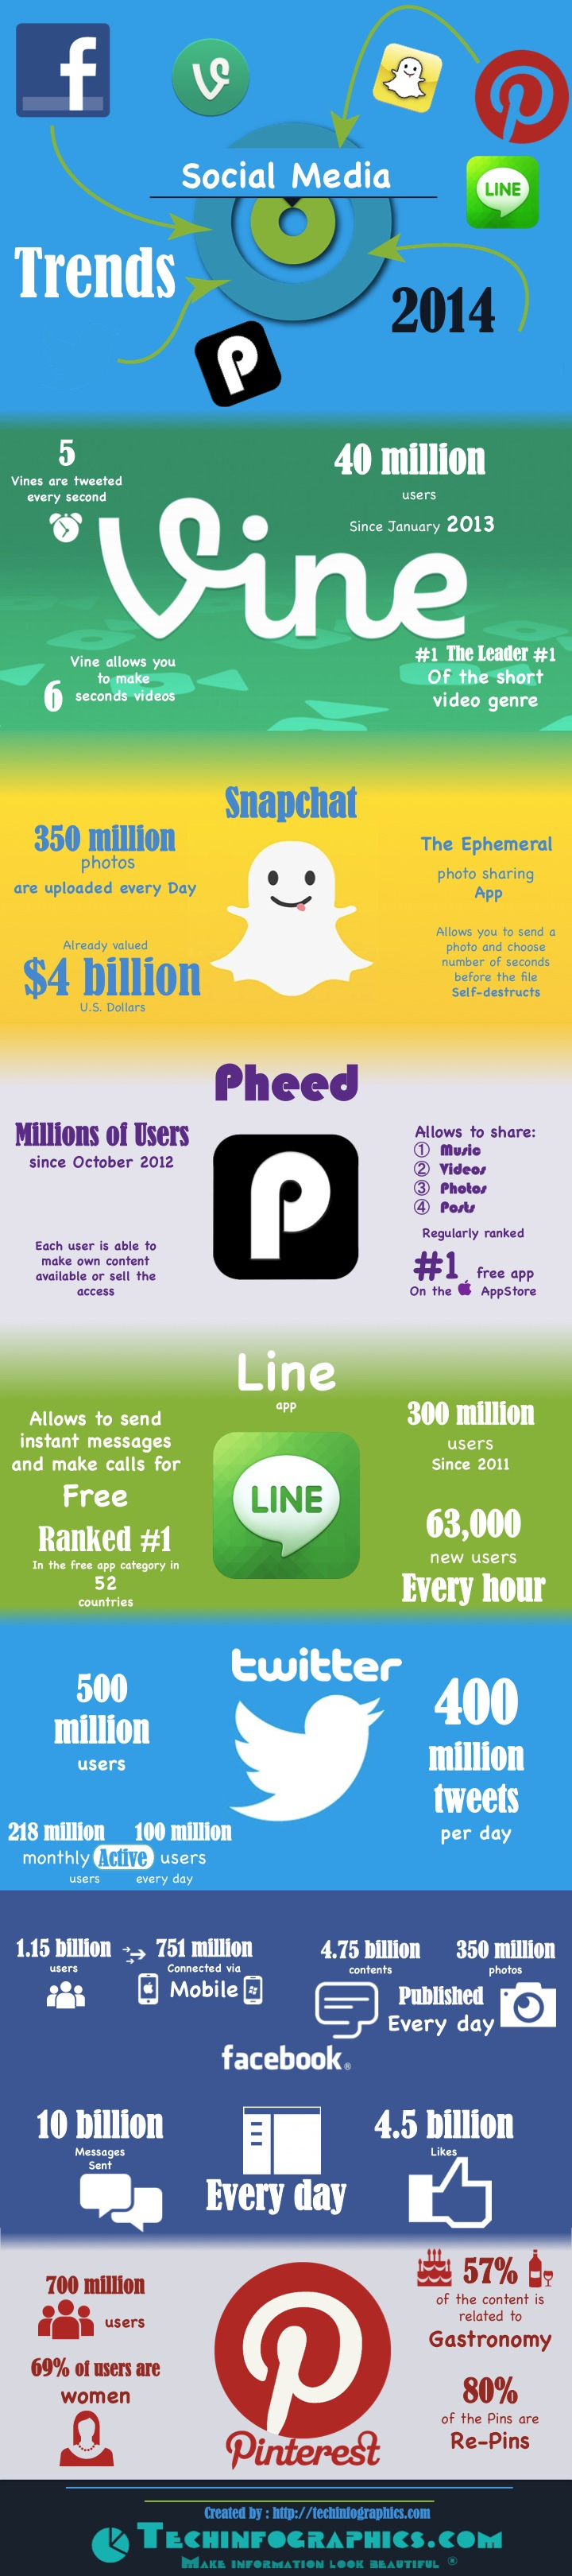 Social Media – Trends and Statistics - Infographic